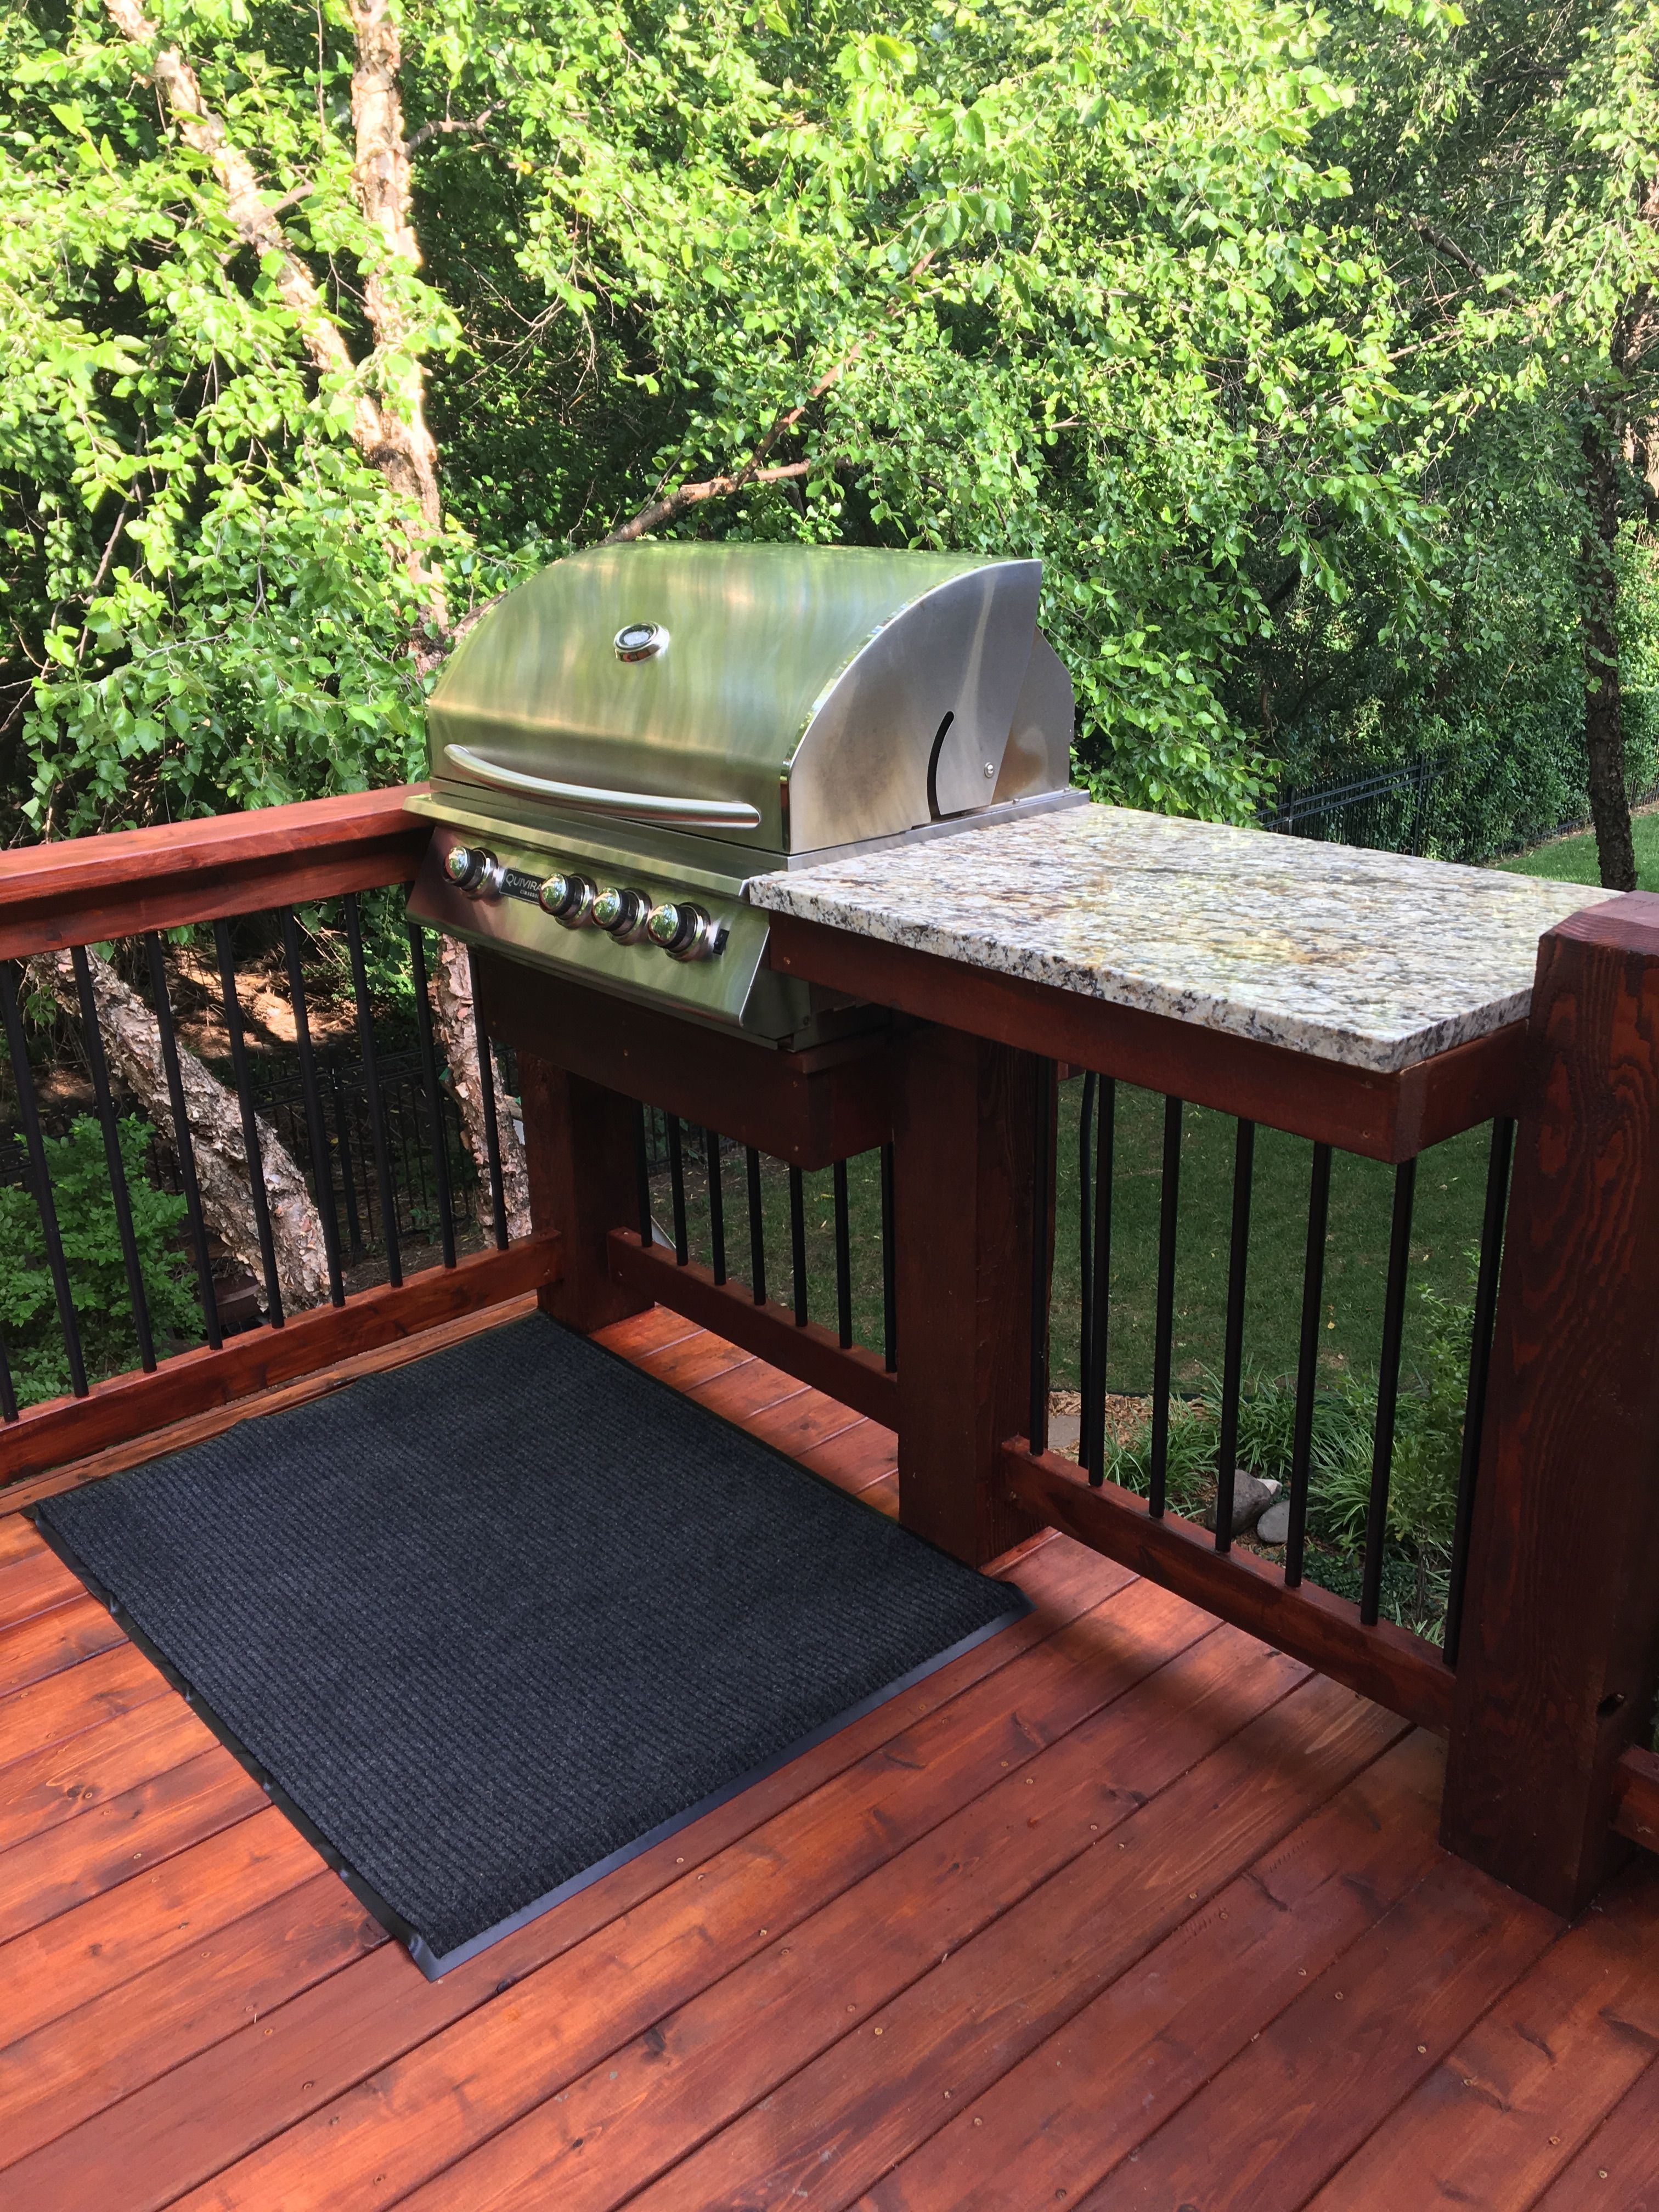 Deck Rail With Built In Grill And Granite Prep Table Builtingrill Deck Designs Backyard Decks Backyard Outdoor